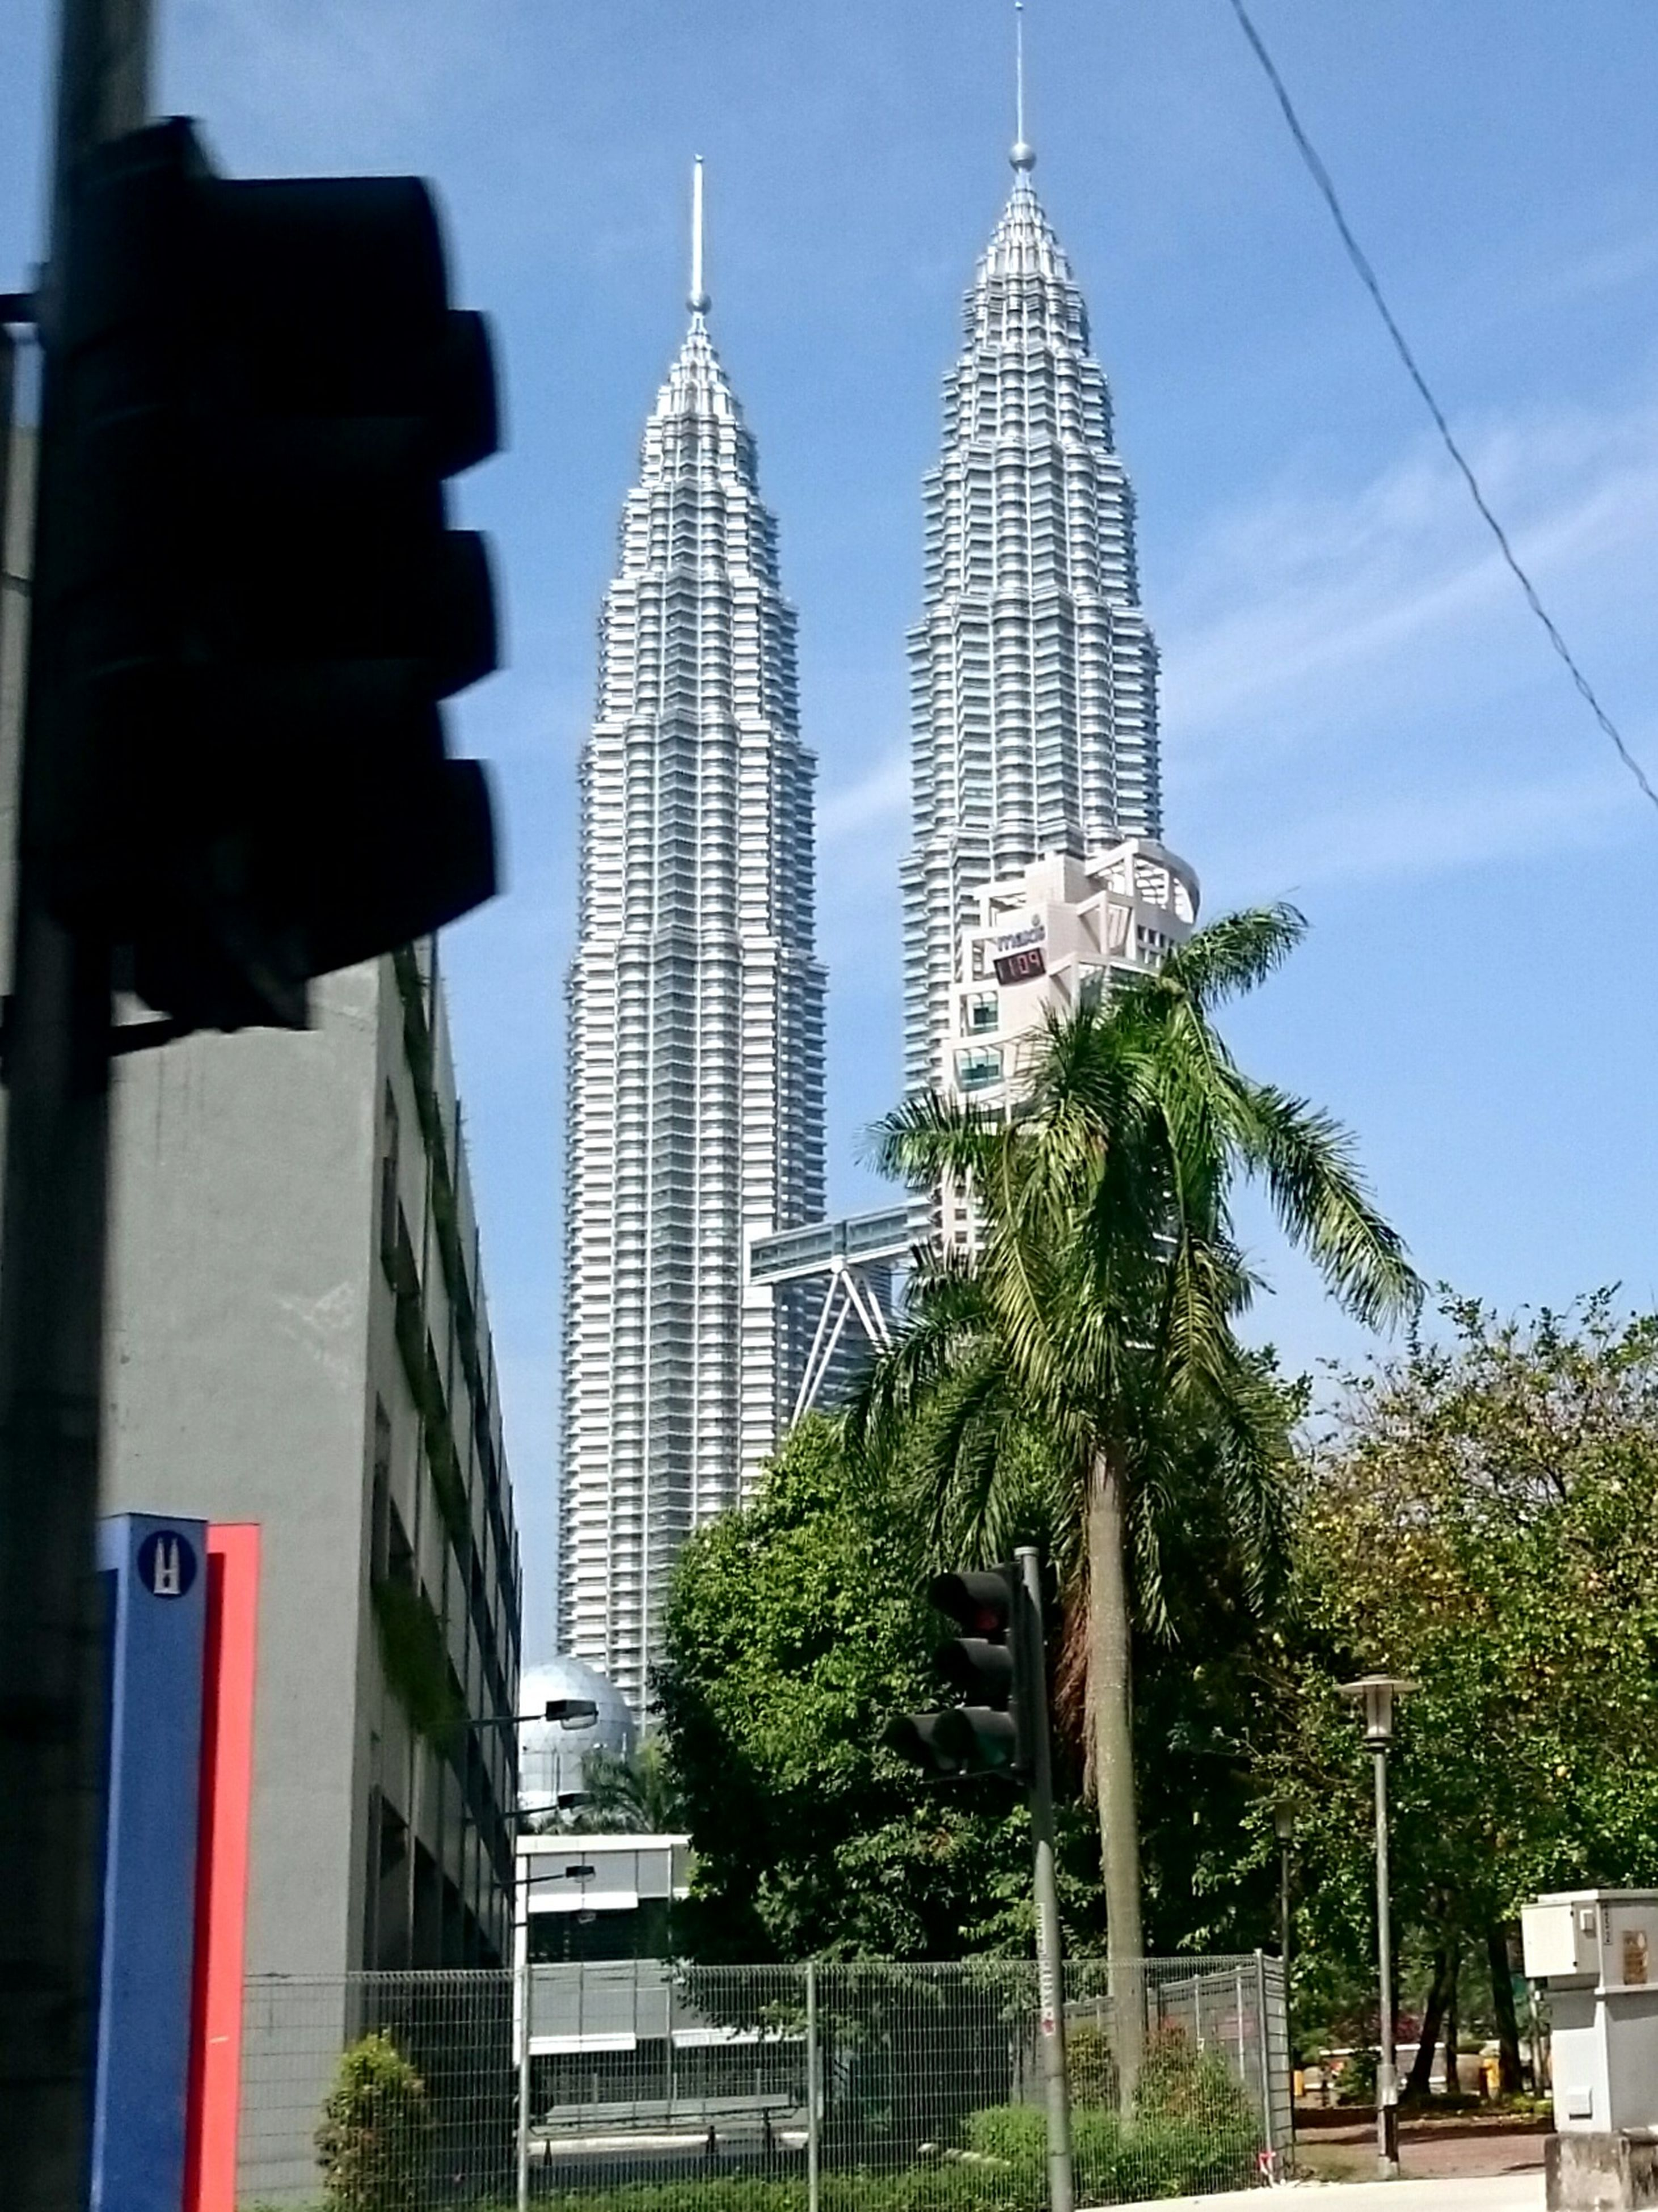 architecture, building exterior, built structure, tall - high, tower, low angle view, city, skyscraper, modern, office building, sky, spire, tree, famous place, travel destinations, capital cities, tall, building, day, city life